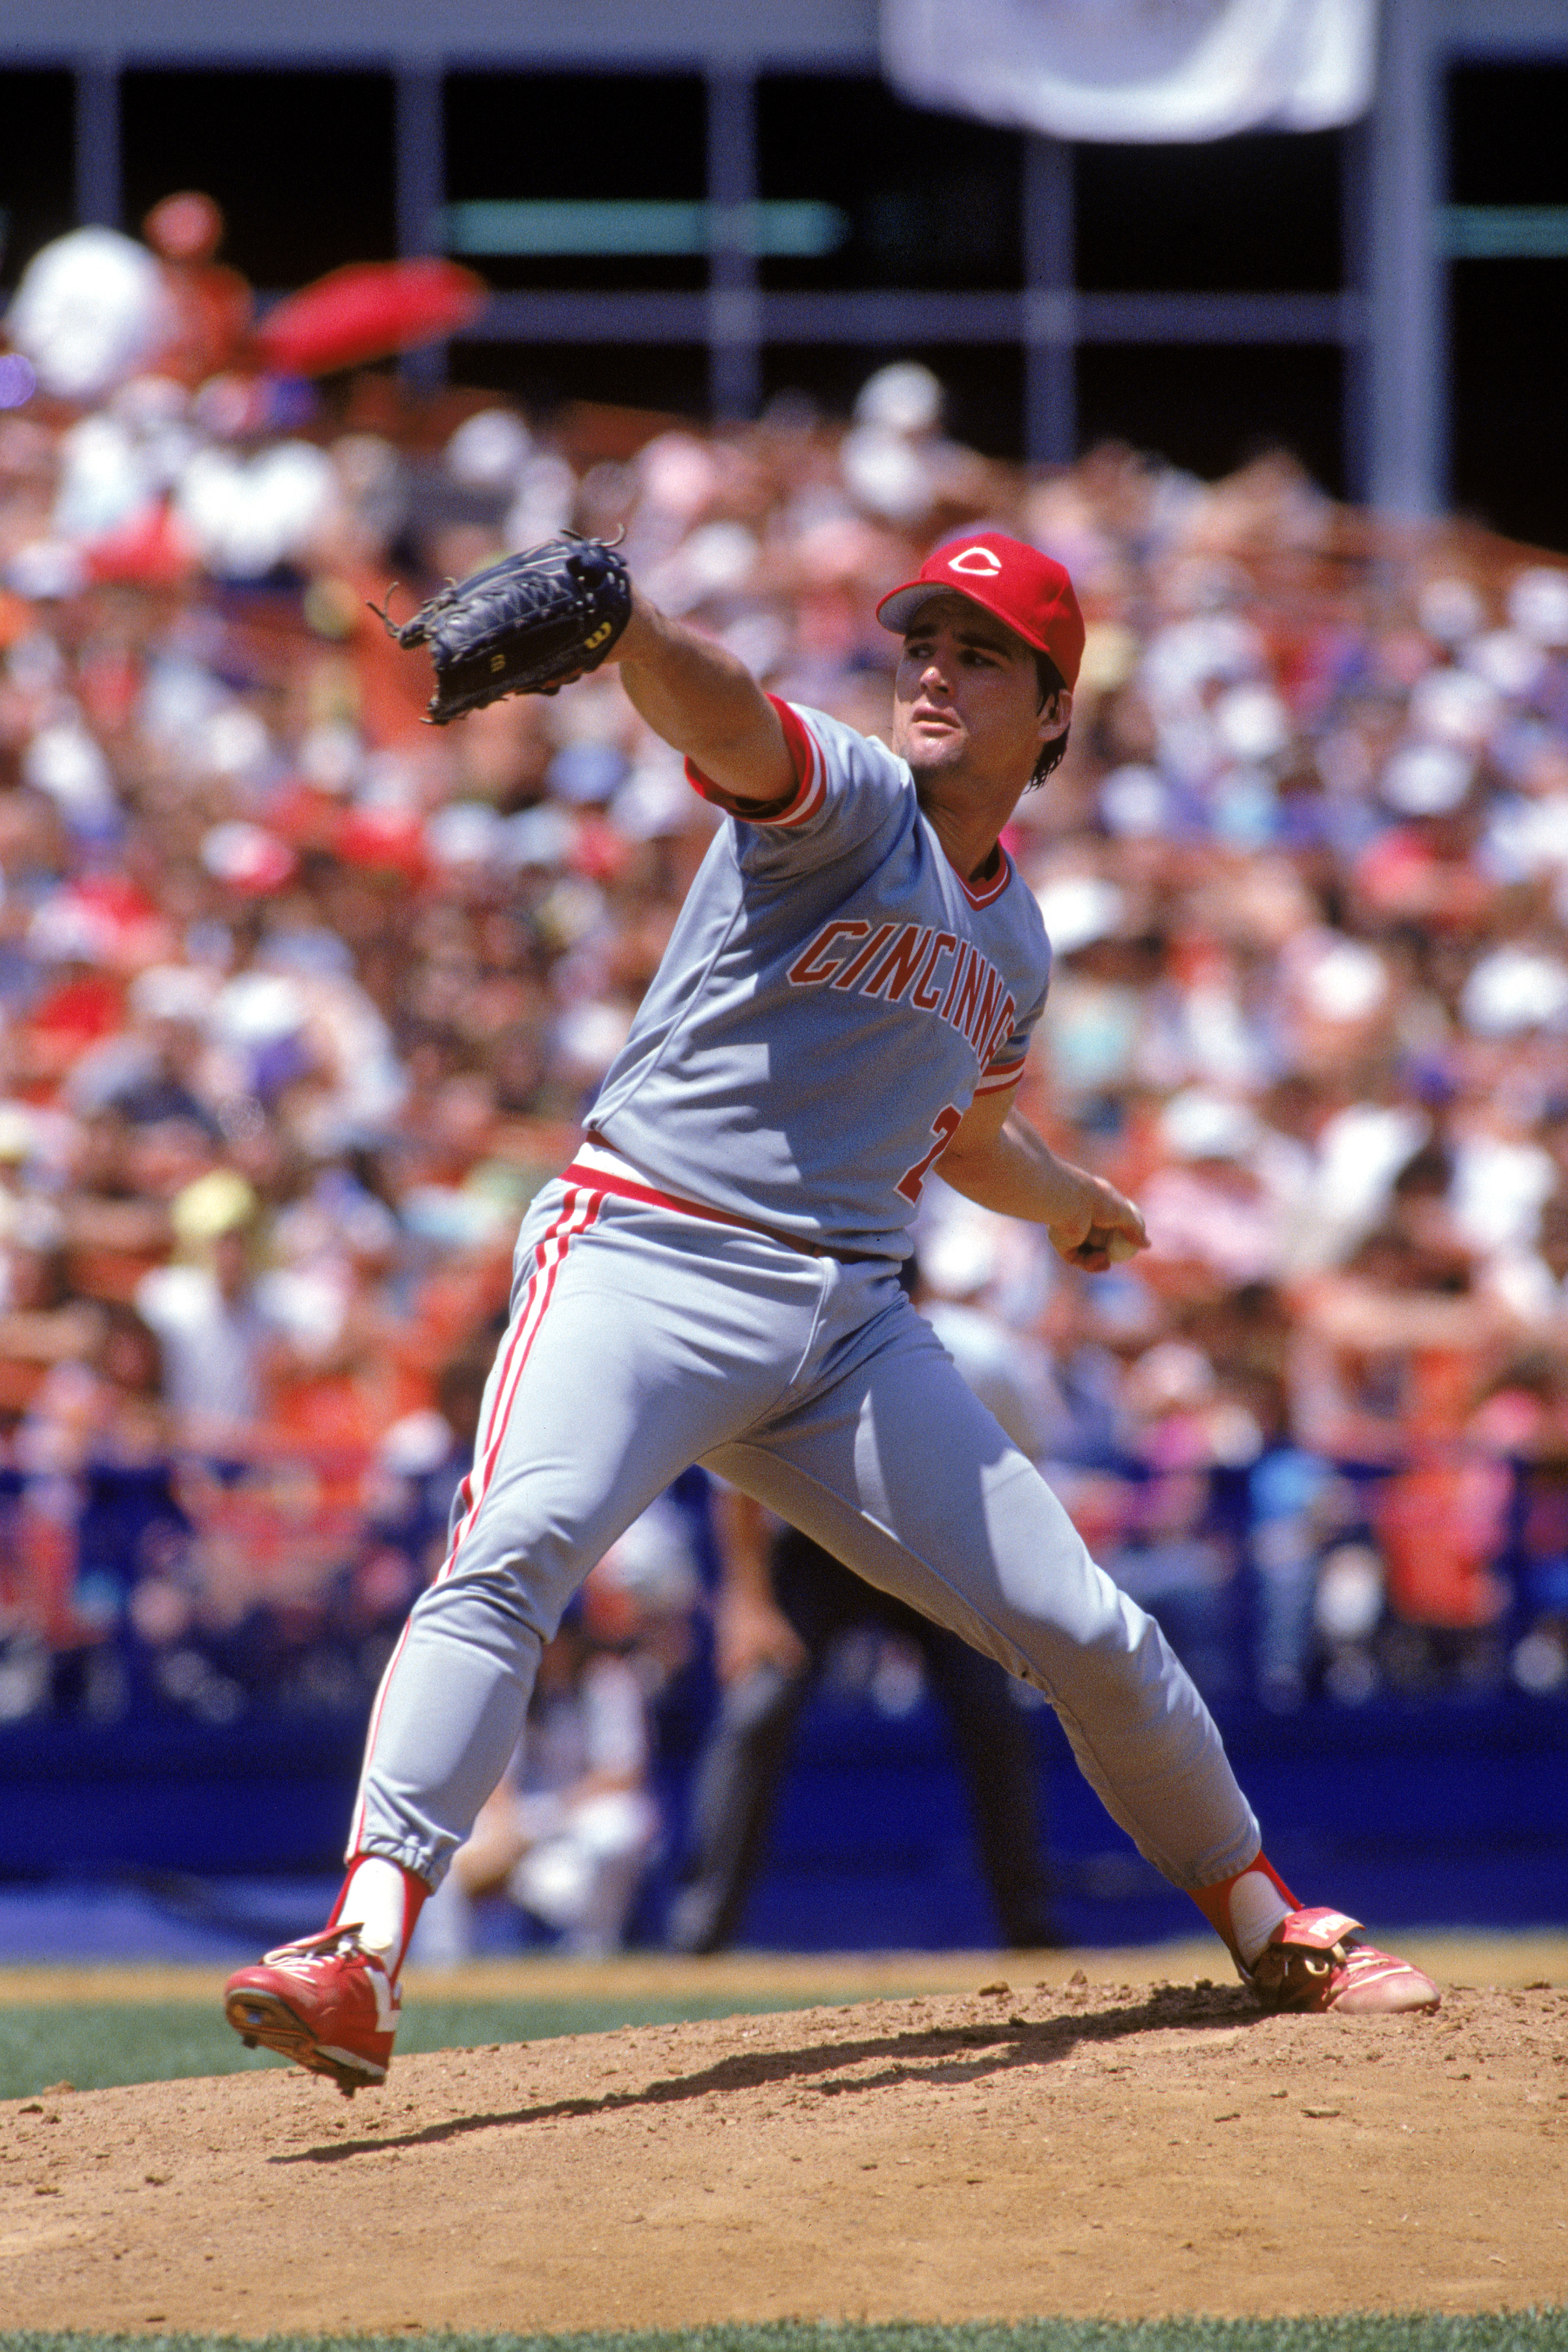 1990:  Danny Jackson of the Cincinnati Reds winds back to  pitch during a MLB game in the 1990 season. ( Photo by: Scott Halleran/Getty Images)